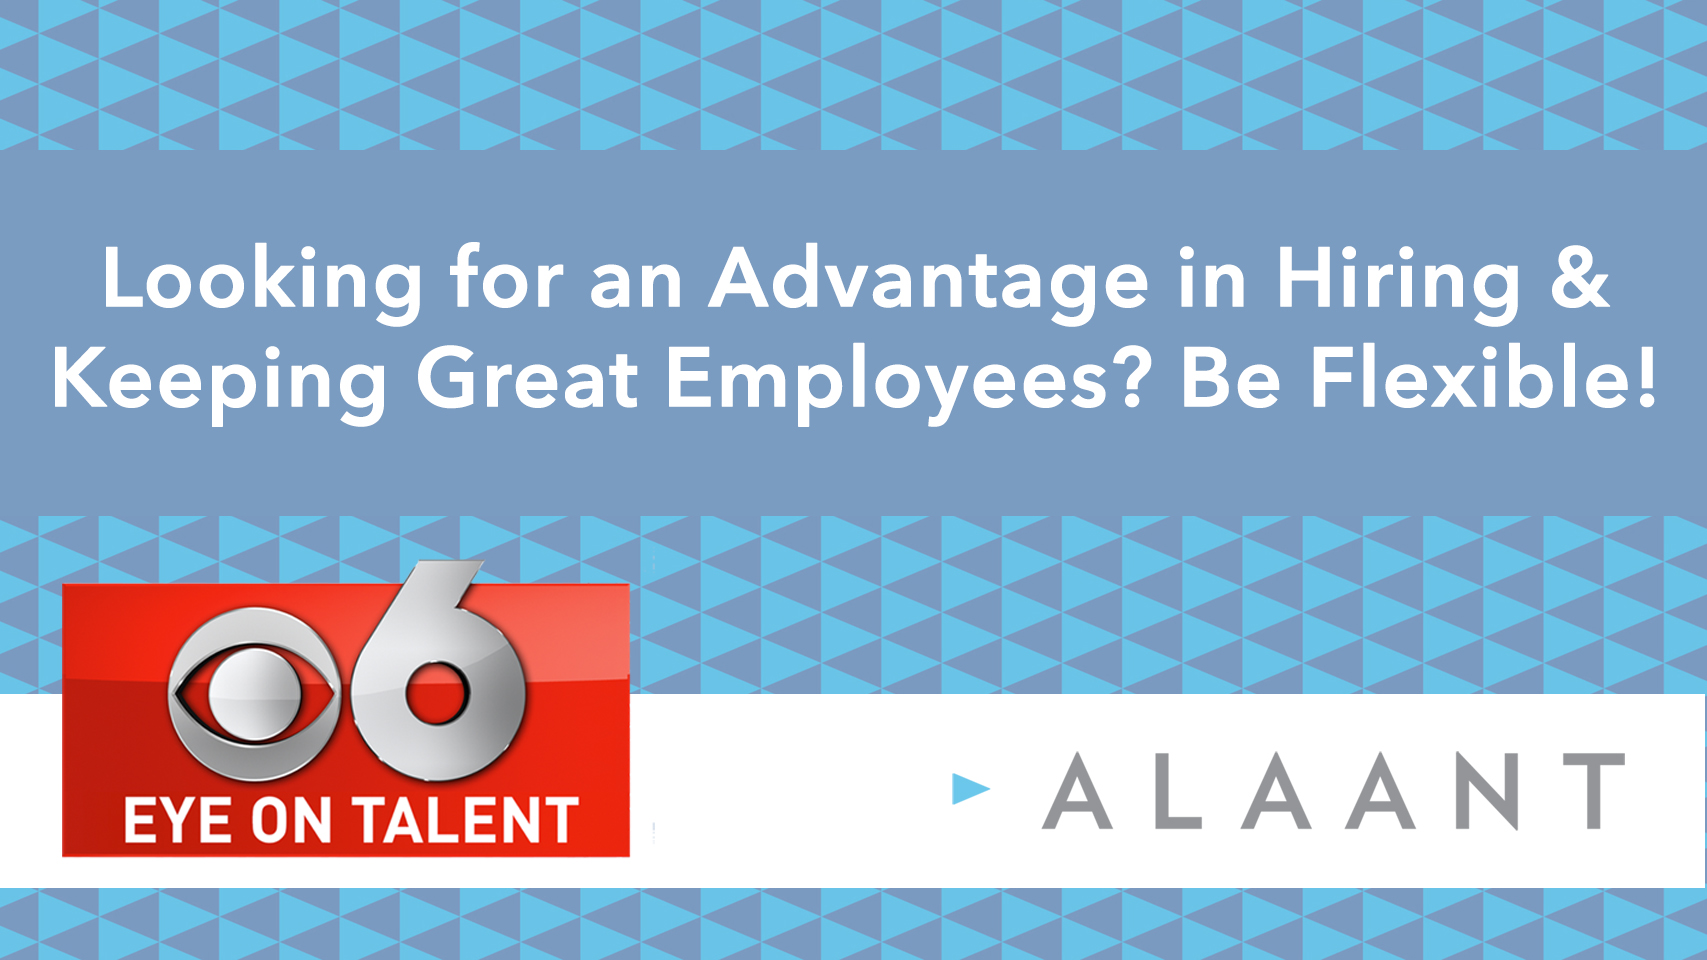 Eye On Talent: Looking for an Advantage in Hiring & Keeping Great Employees? Be Flexible!